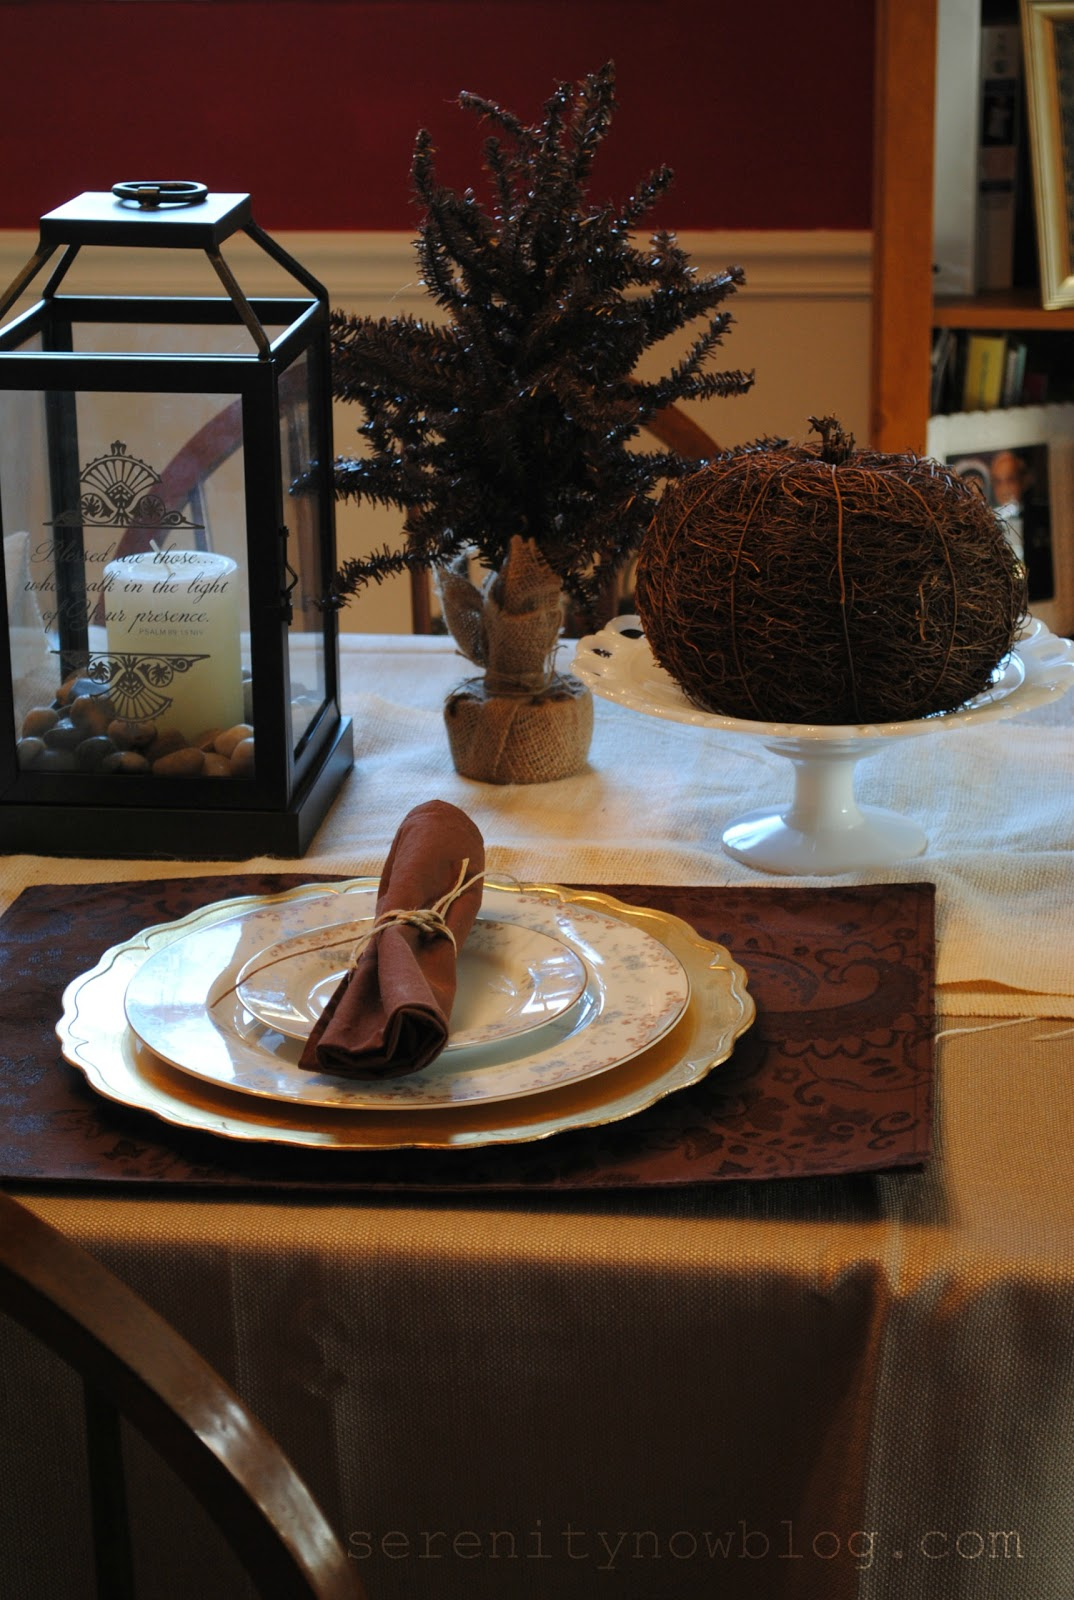 Serenity Now: My Inexpensive Thanksgiving Table Decor